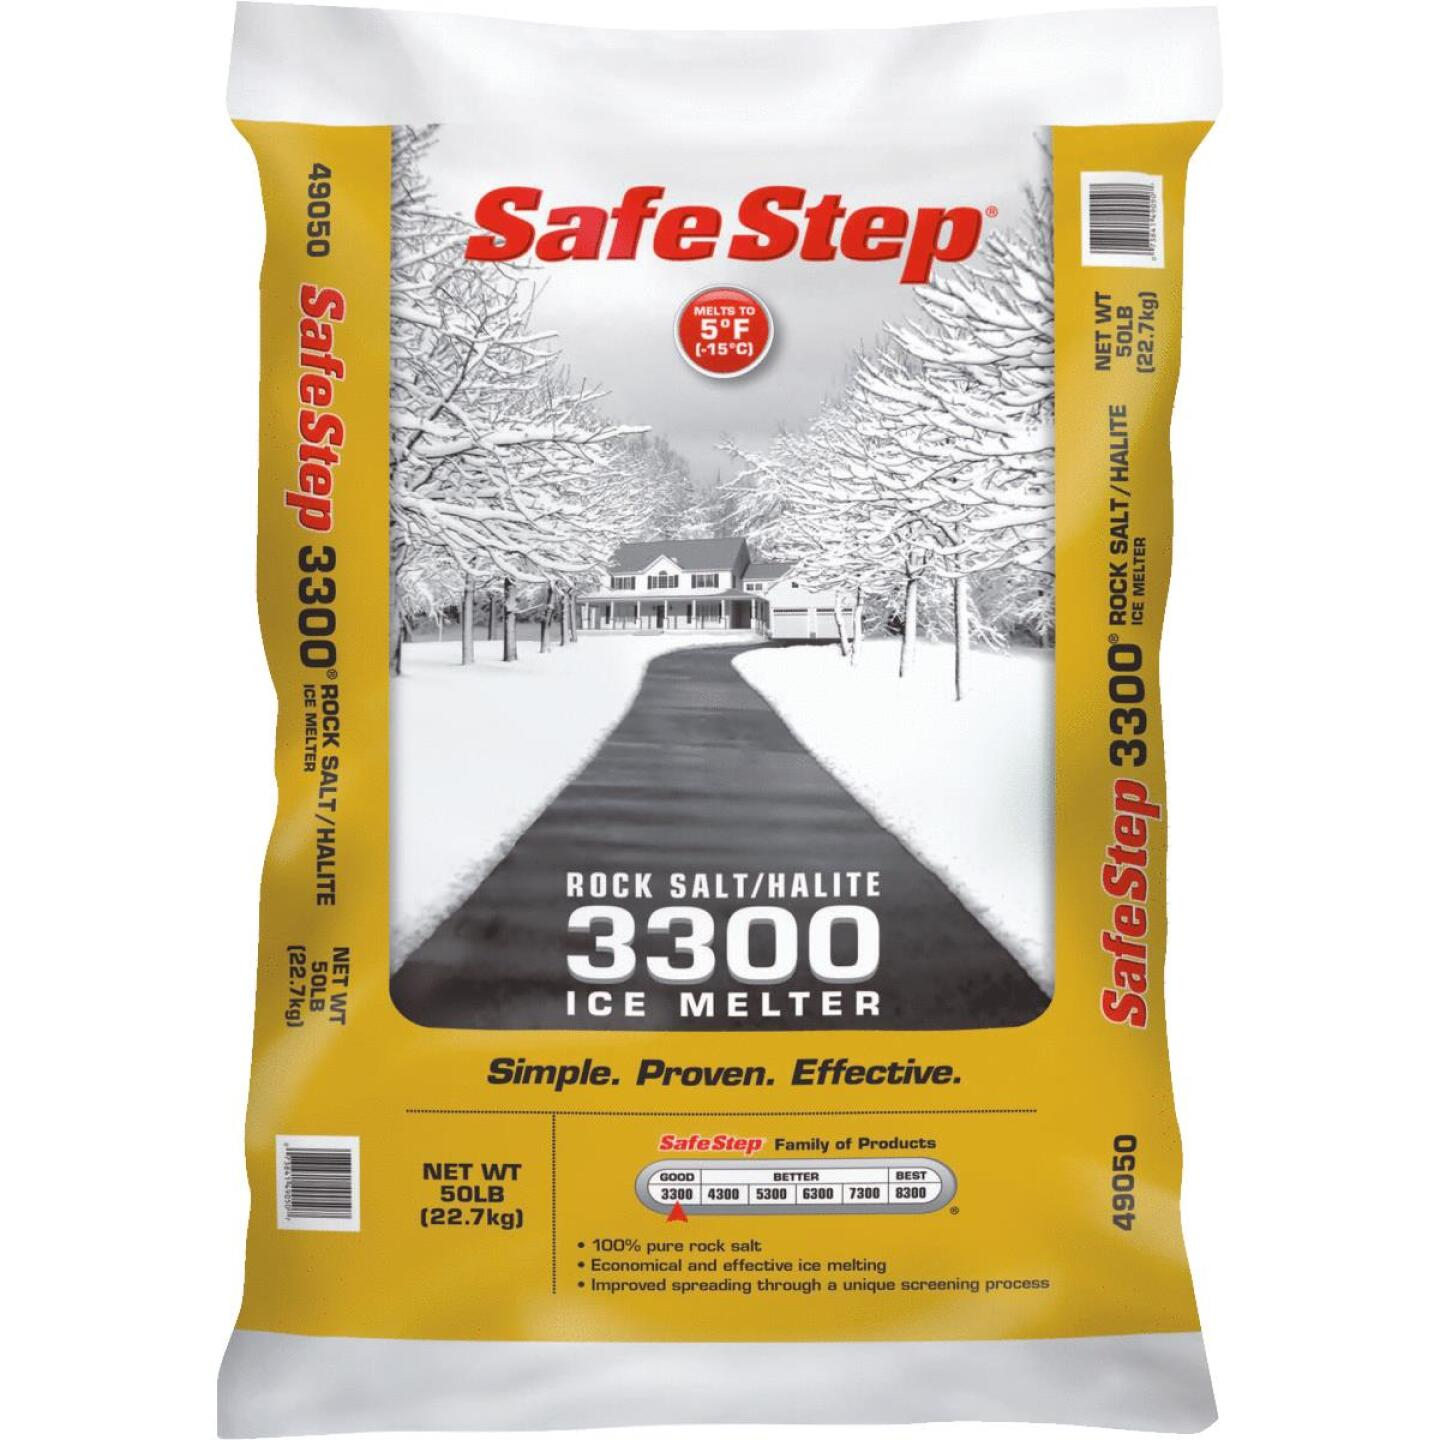 Safe Step 3300 50 Lb. Rock Salt/Halite Ice Melt Large Pellets Image 1